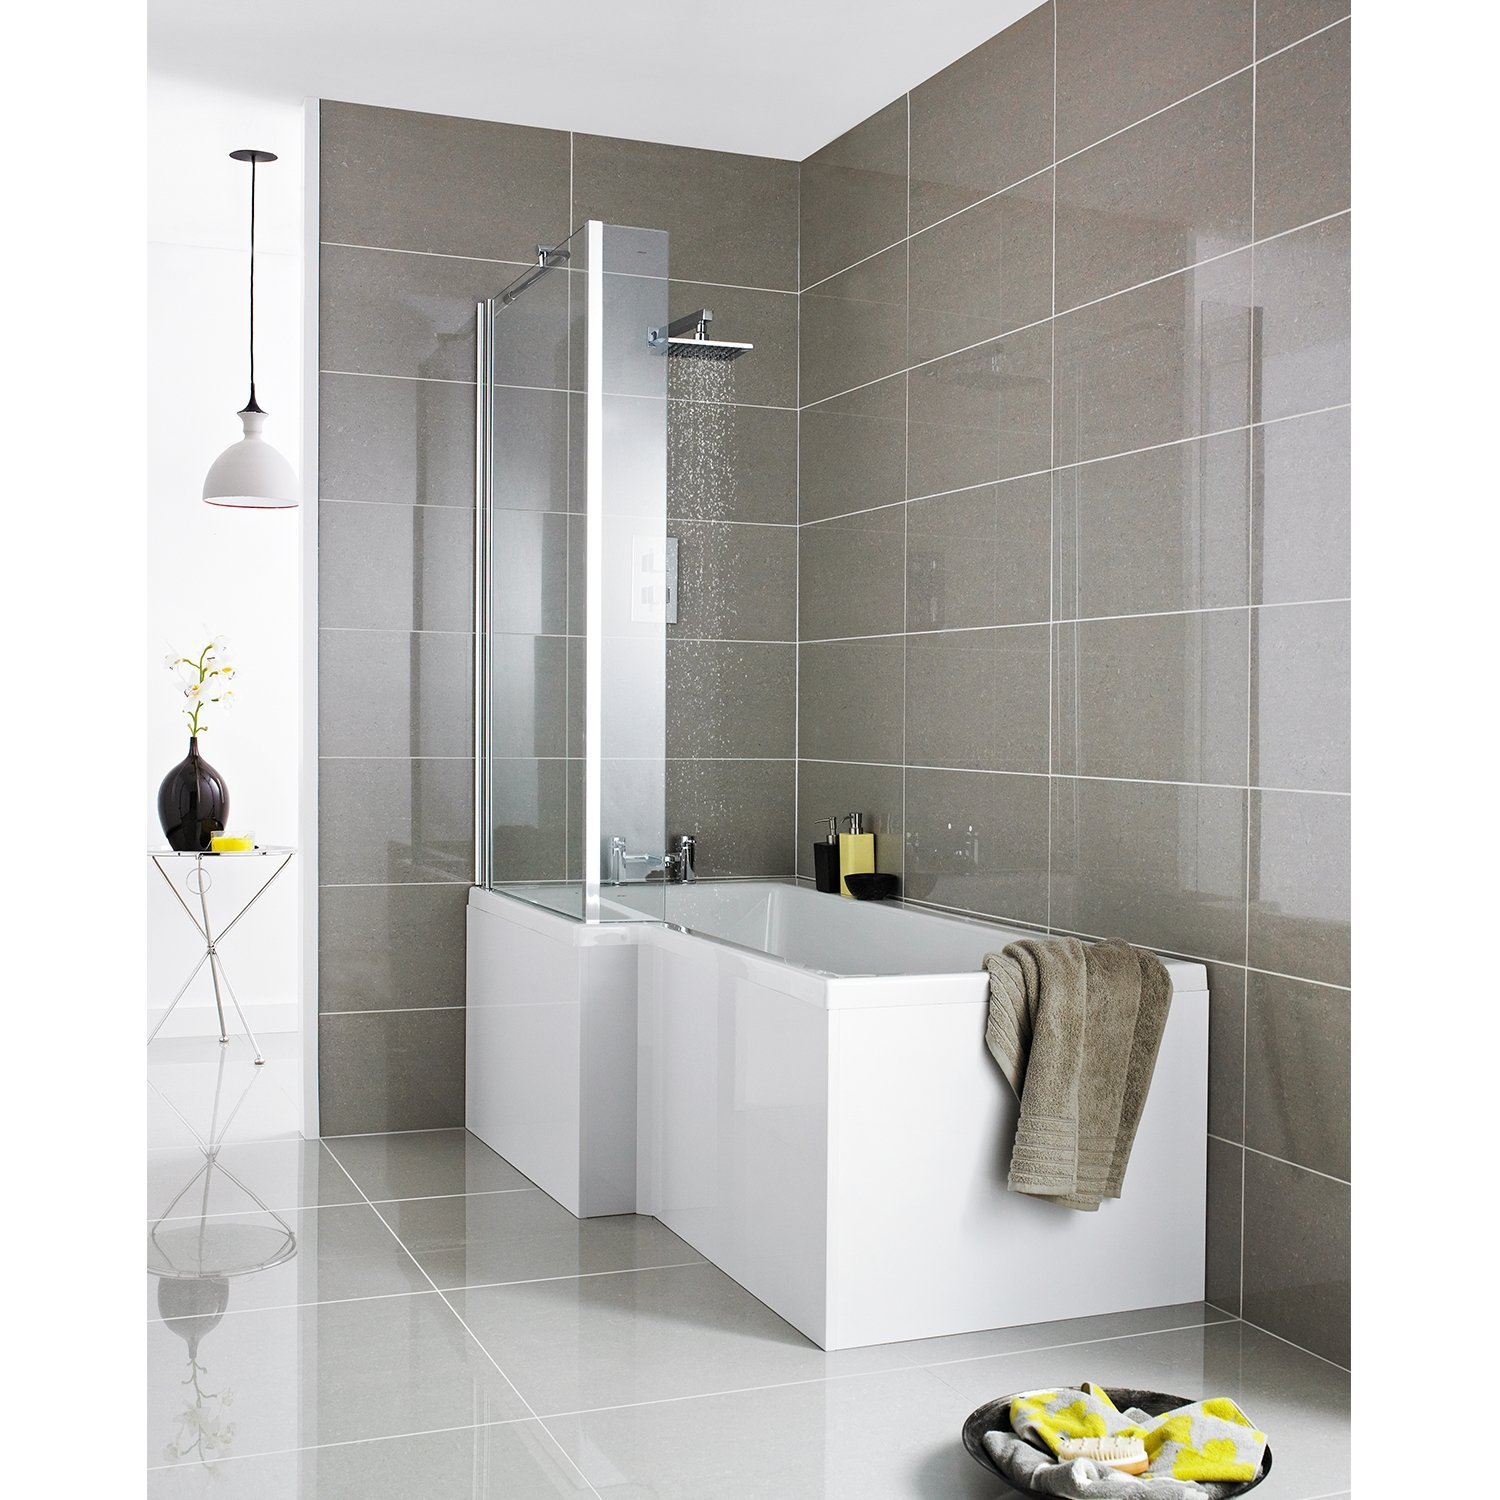 Premier Square L-Shaped Shower Bath 1500mm x 700mm/850mm Left Handed